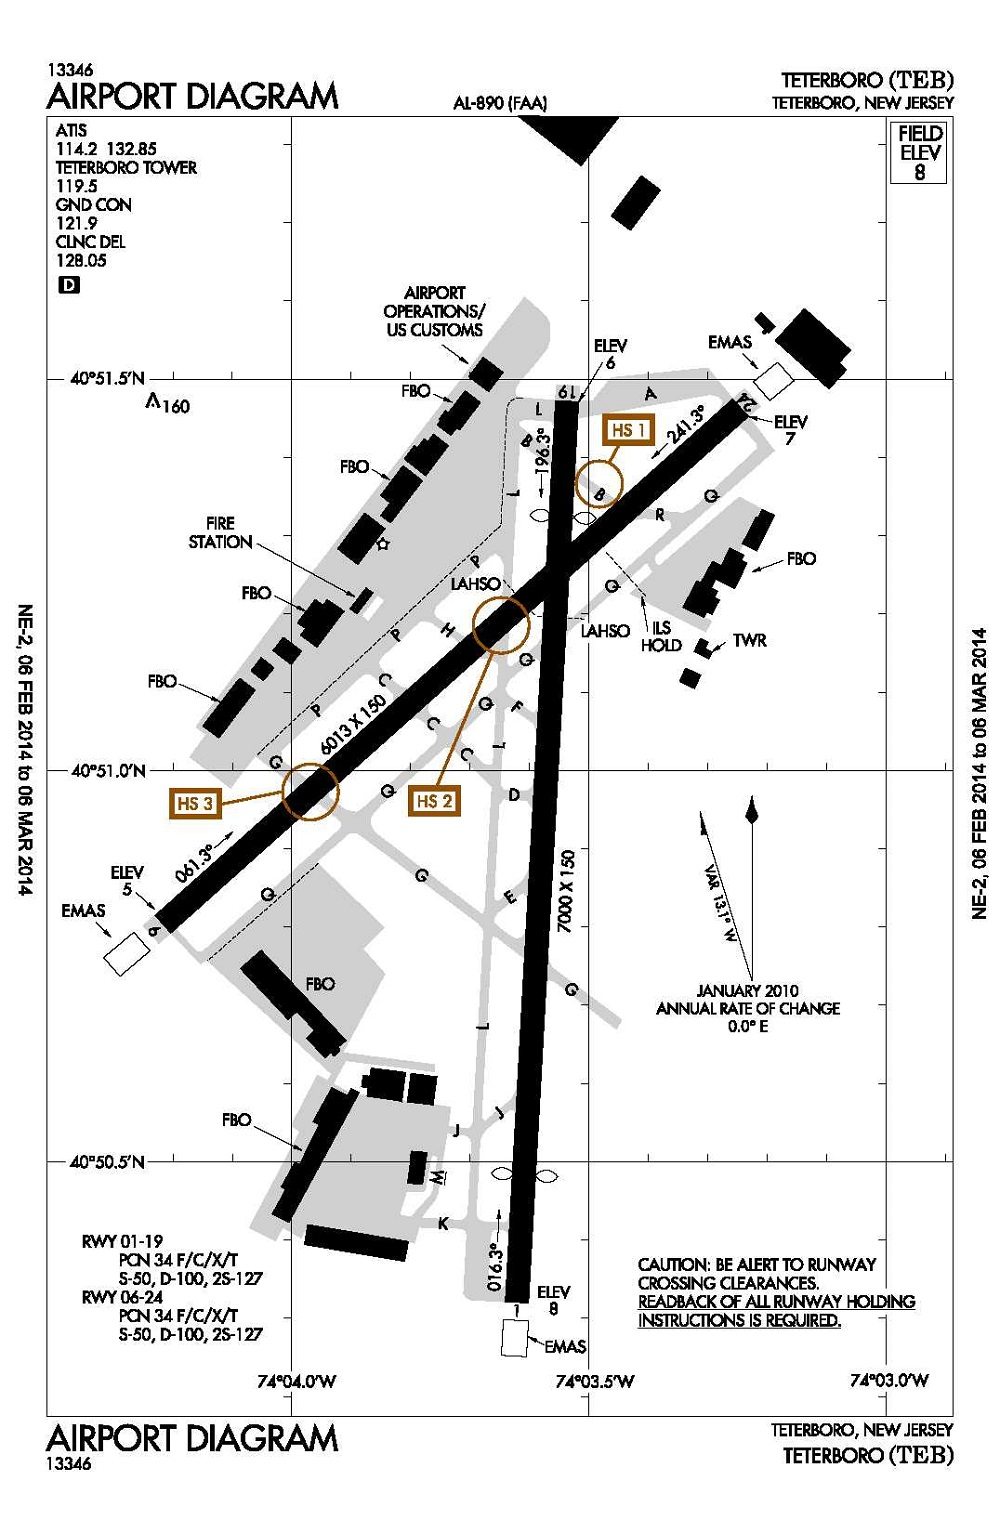 Kteb Aviation Impact Reform Click On The Schematic To Open A Larger Version In New Window Or Ave